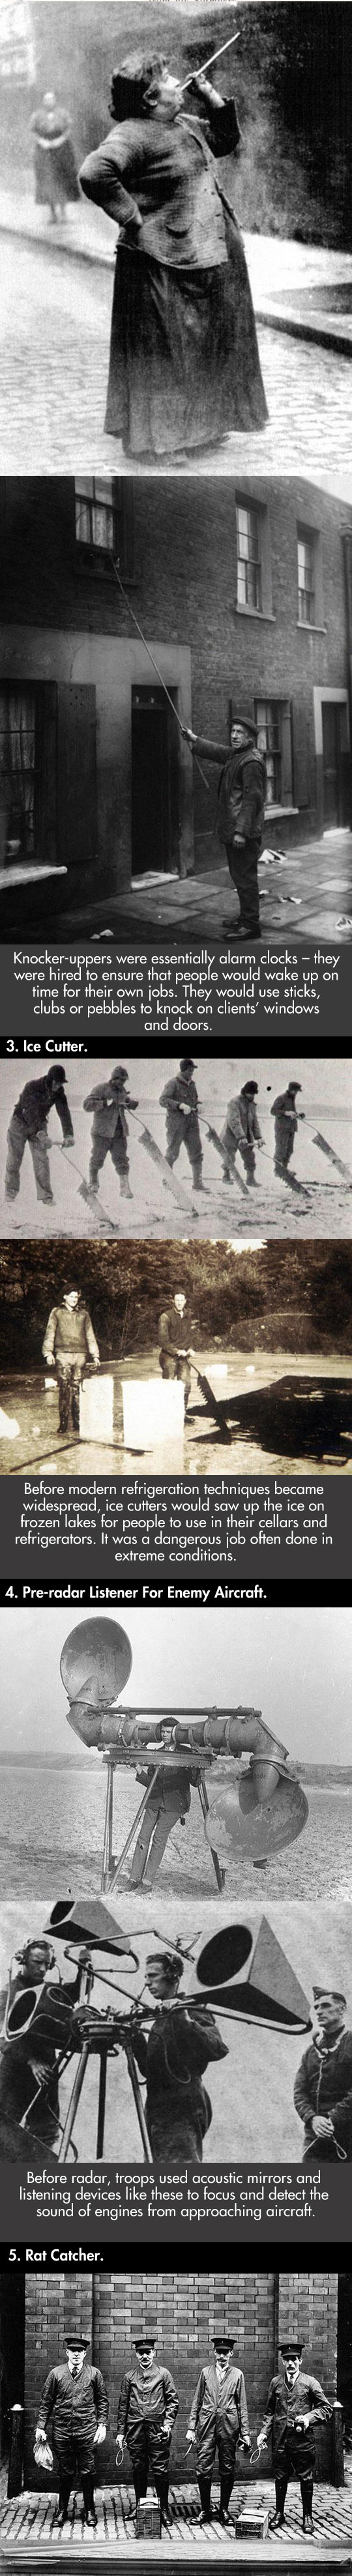 cool-jobs-dont-exist-today-old-ice-cutter